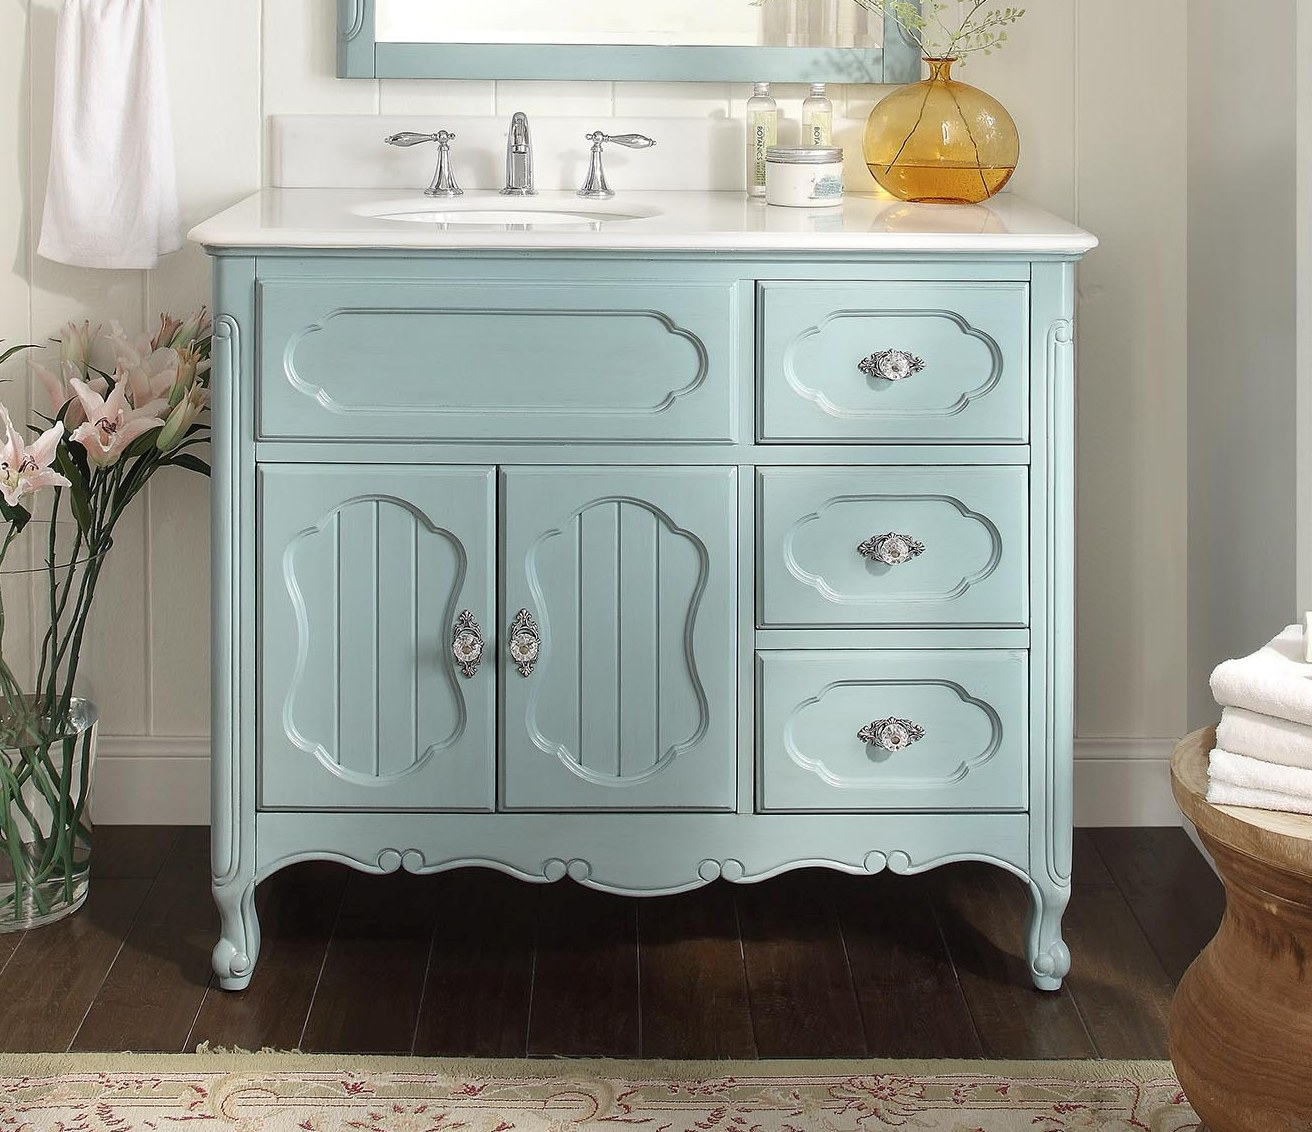 Adelina 42 inch Antique Cottage Bathroom Vanity Light Blue Finish White  Marble Top - Adelina 42 Inch Antique Cottage Bathroom Vanity Light Blue Finish